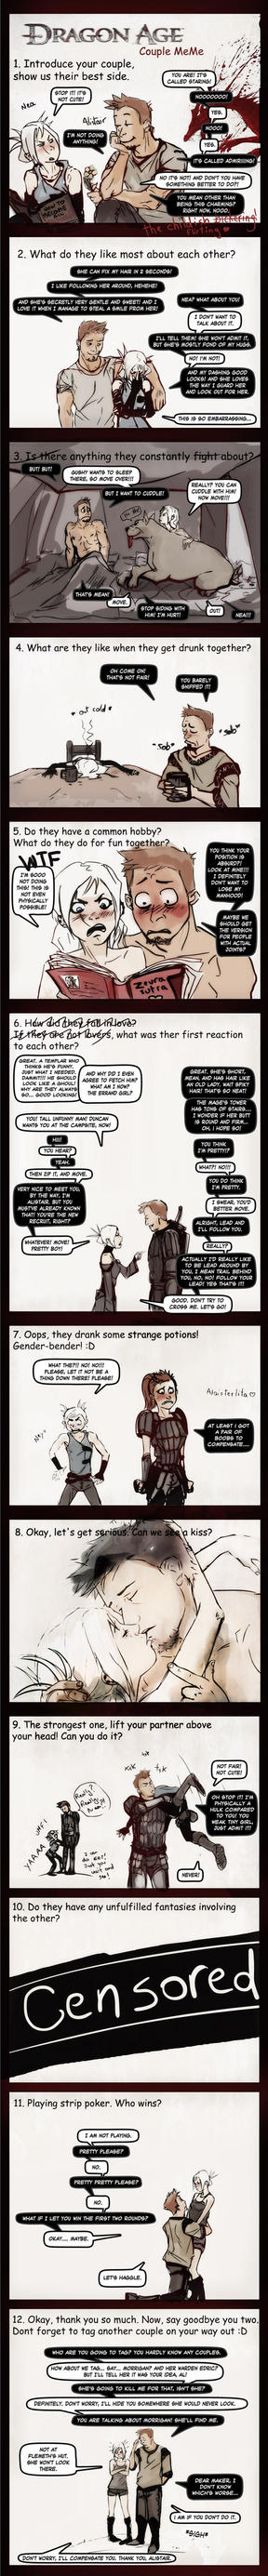 Dragon Age Couple Meme by chakhabit